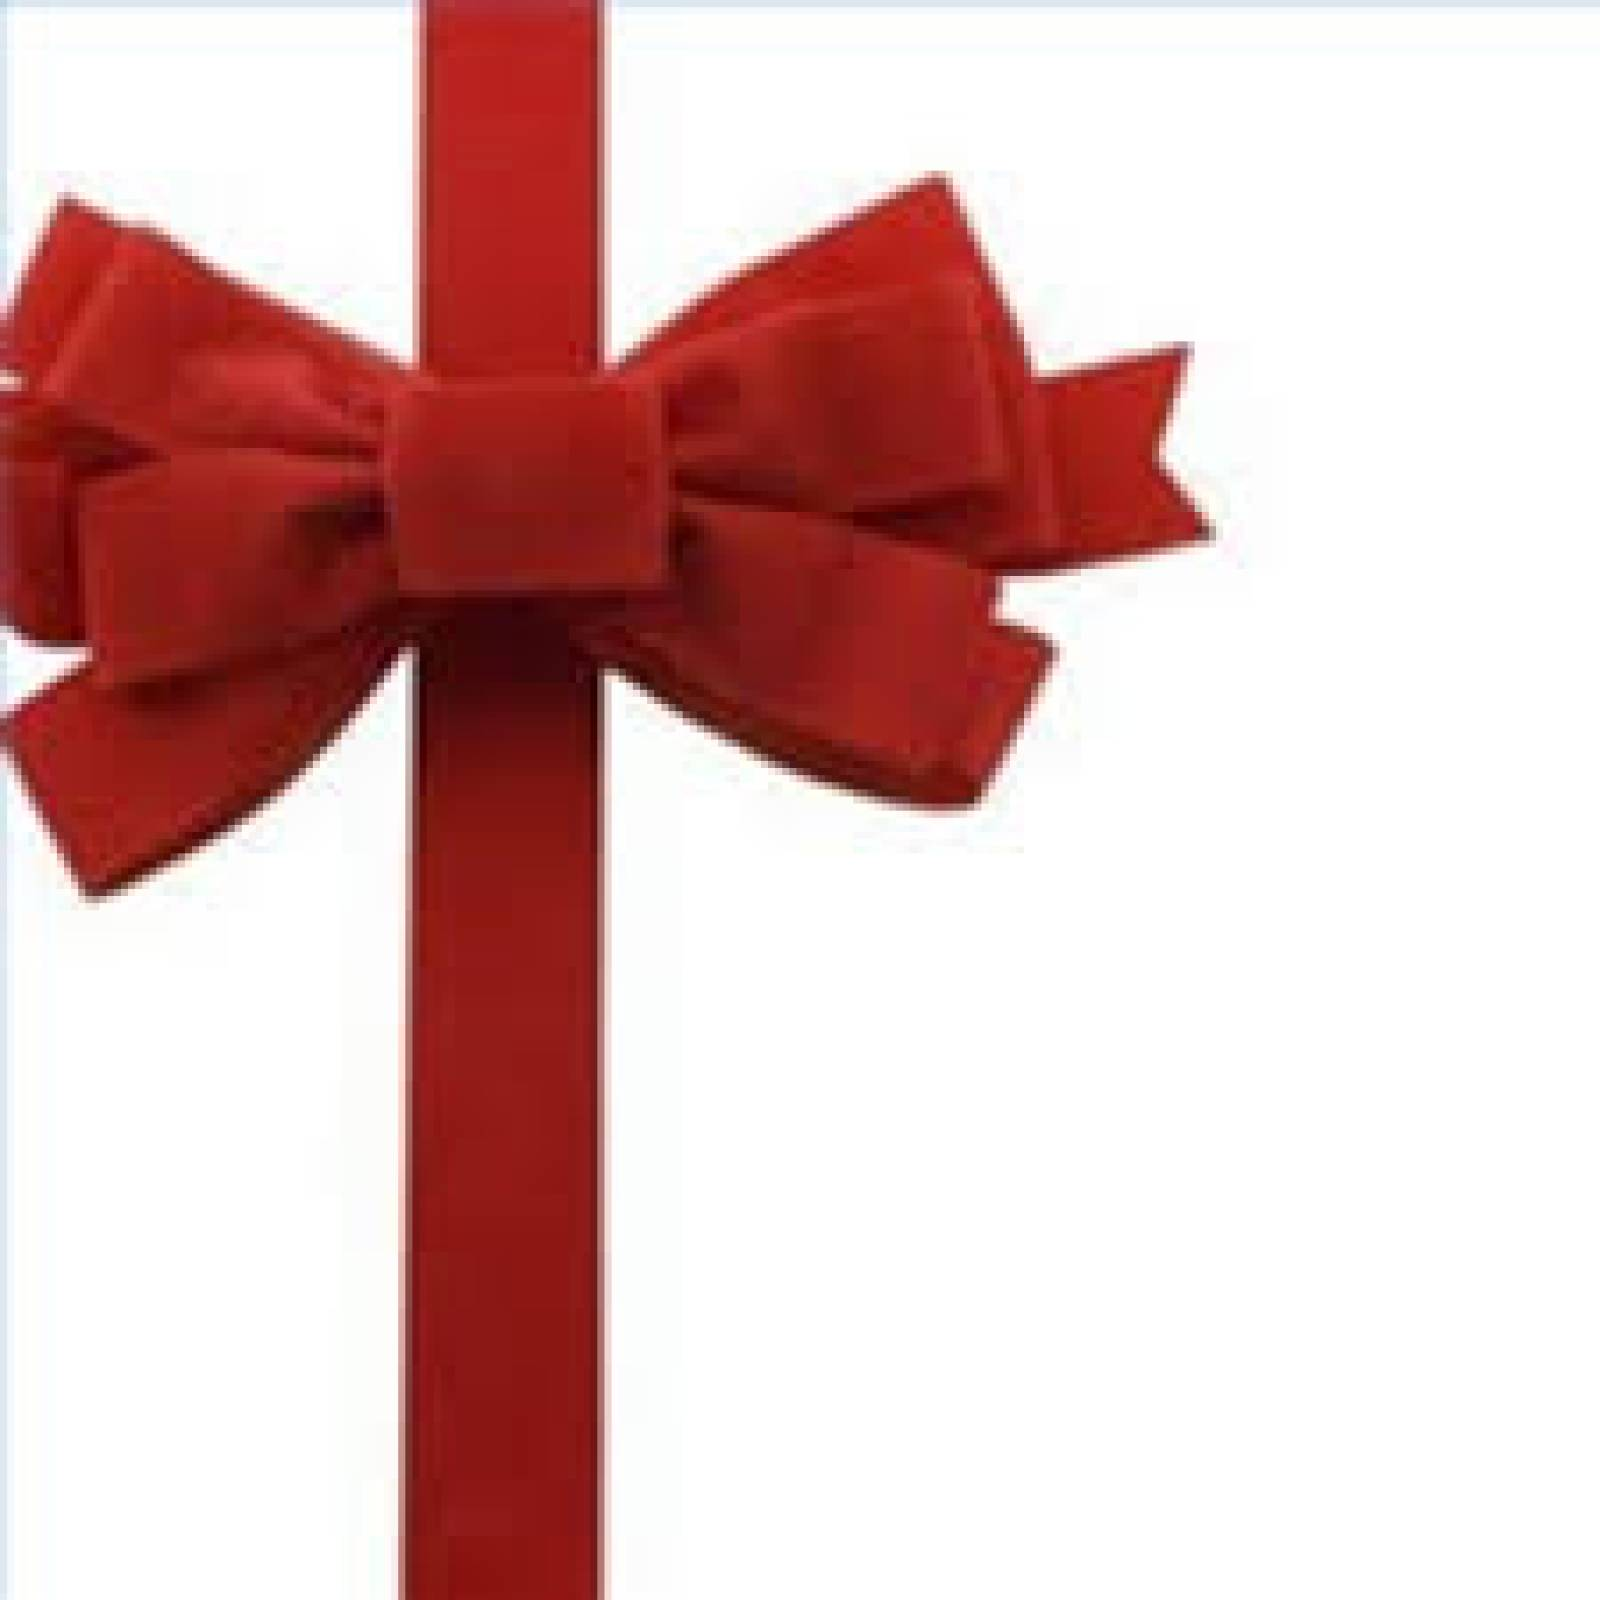 Giftwrapping for your 1 Gift